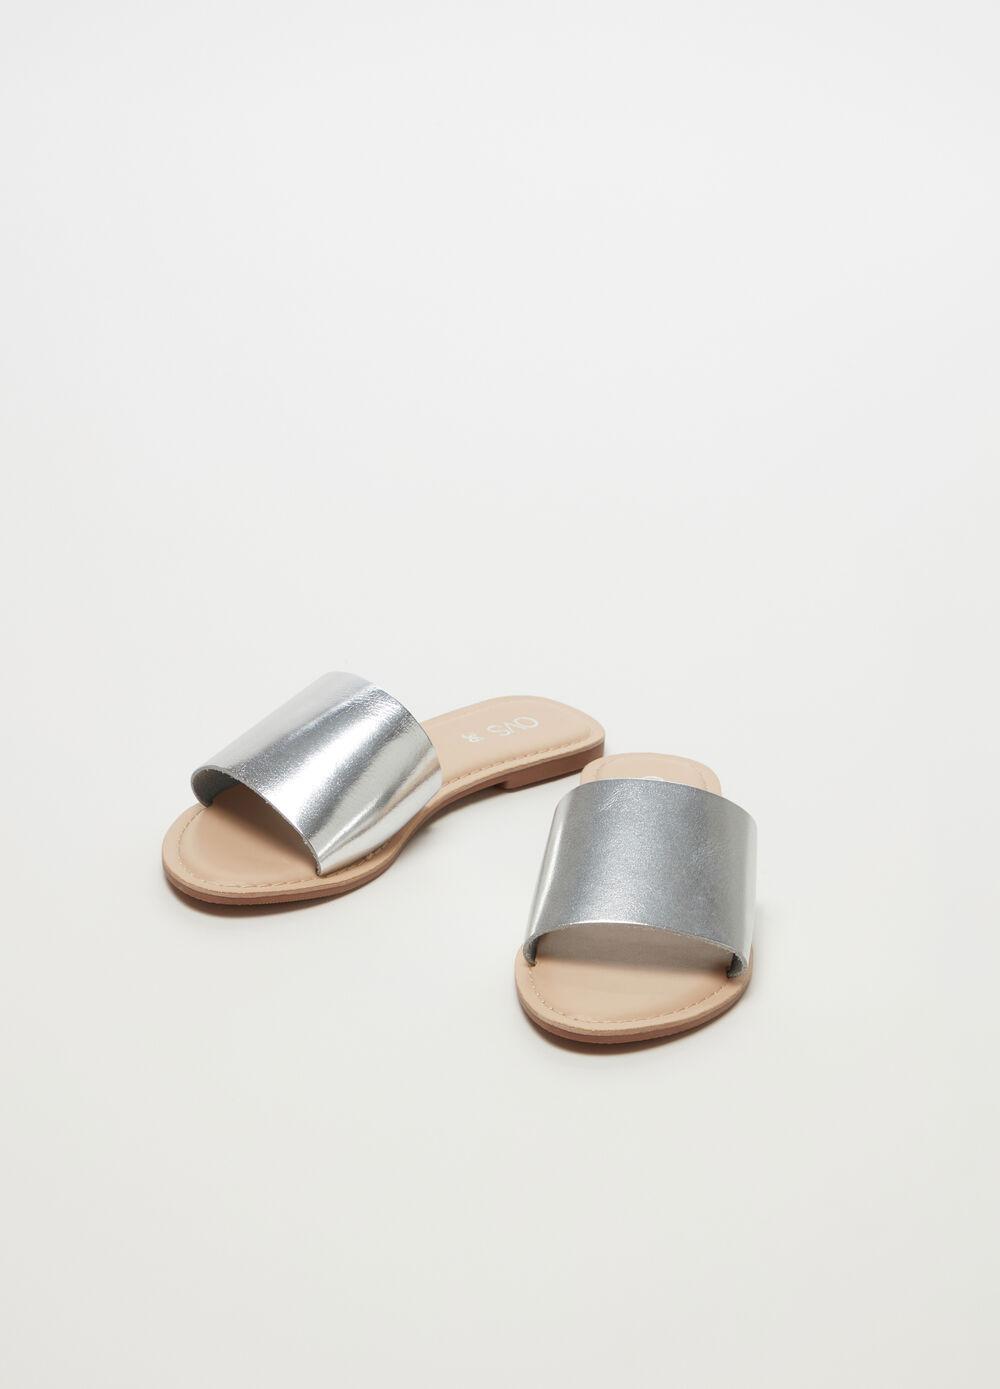 Low thong sandals in silver metallic leather